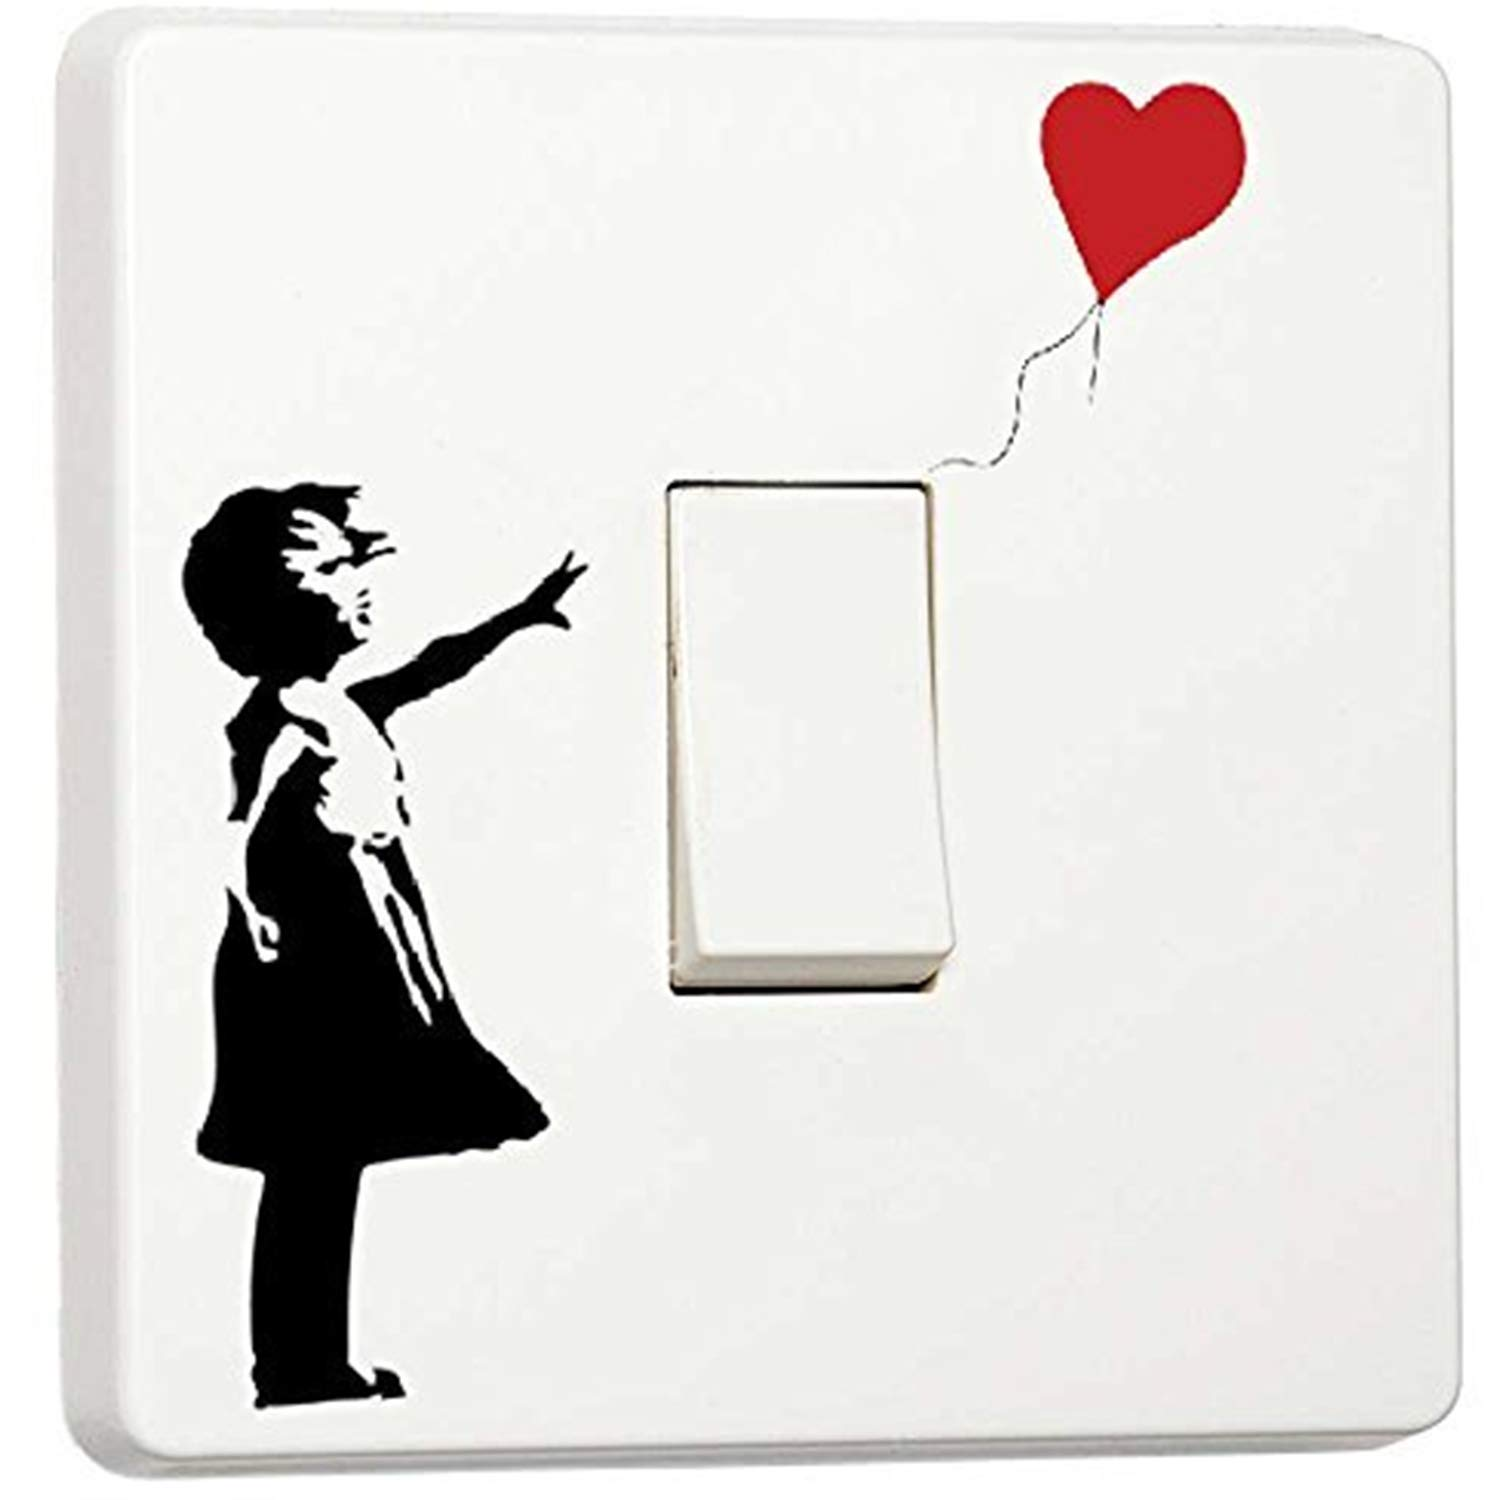 Banksy Style Graffiti Art Girl with Red Balloon Single Light Switch Cover Vinyl Sticker Decal JustStickers®